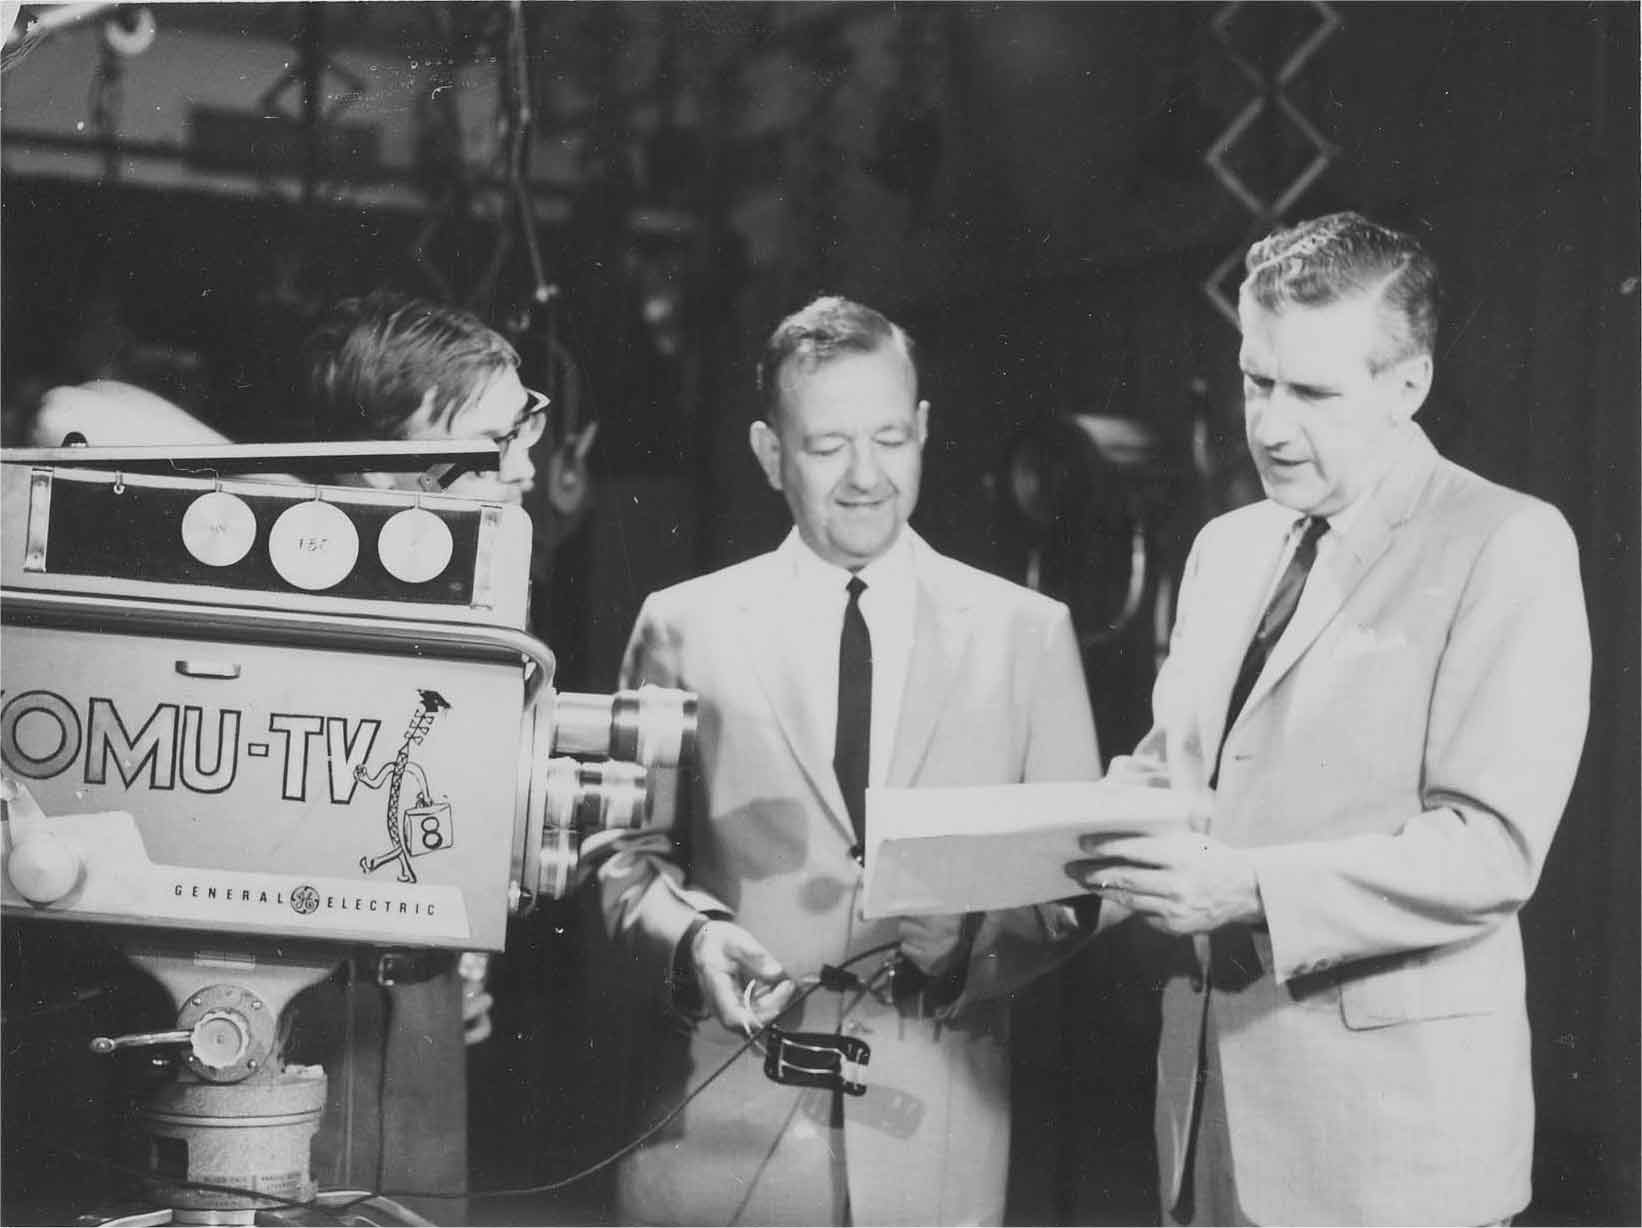 Dr. Lambert in the KOMU-TV Studio, ca. 1955